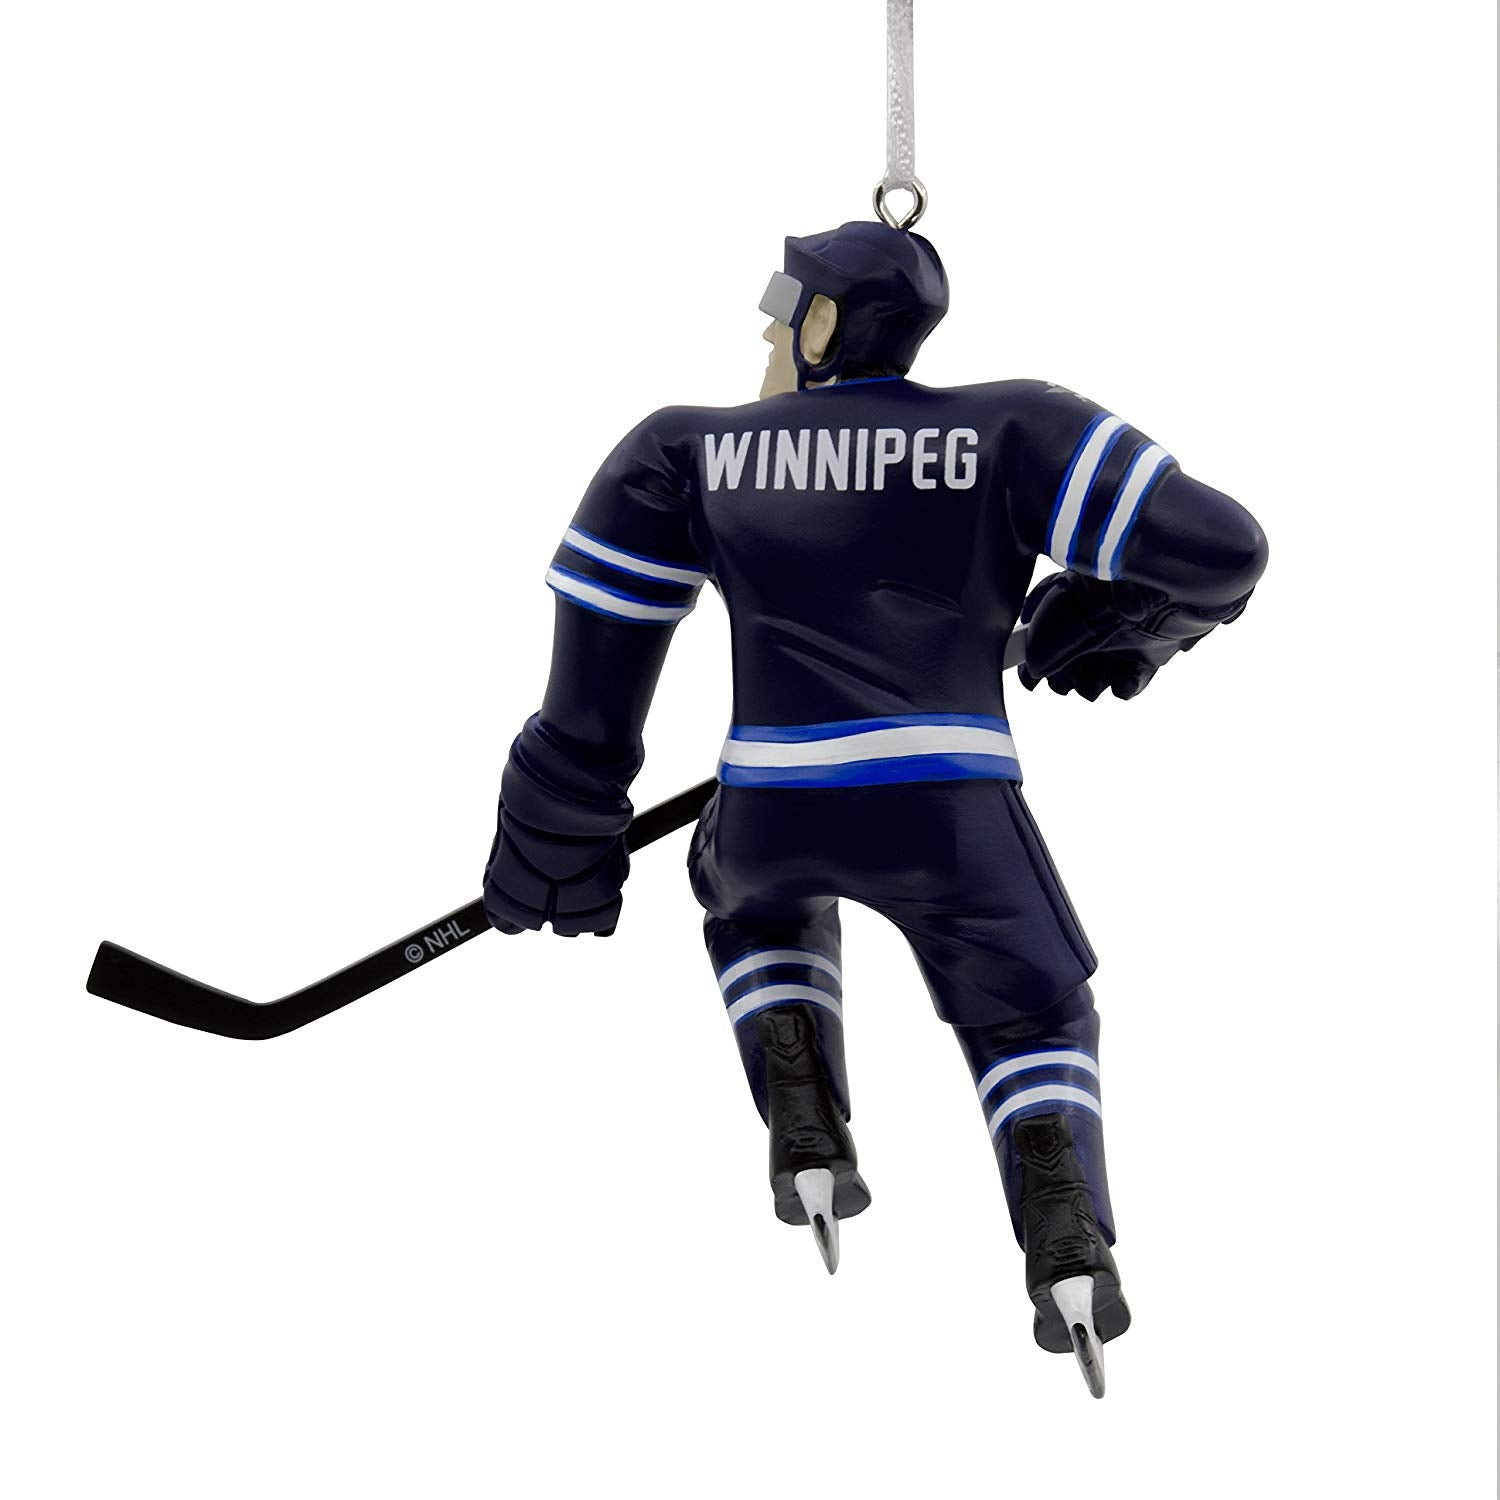 NHL Winnipeg Jets Hallmark Ornament - Sons of Hockey